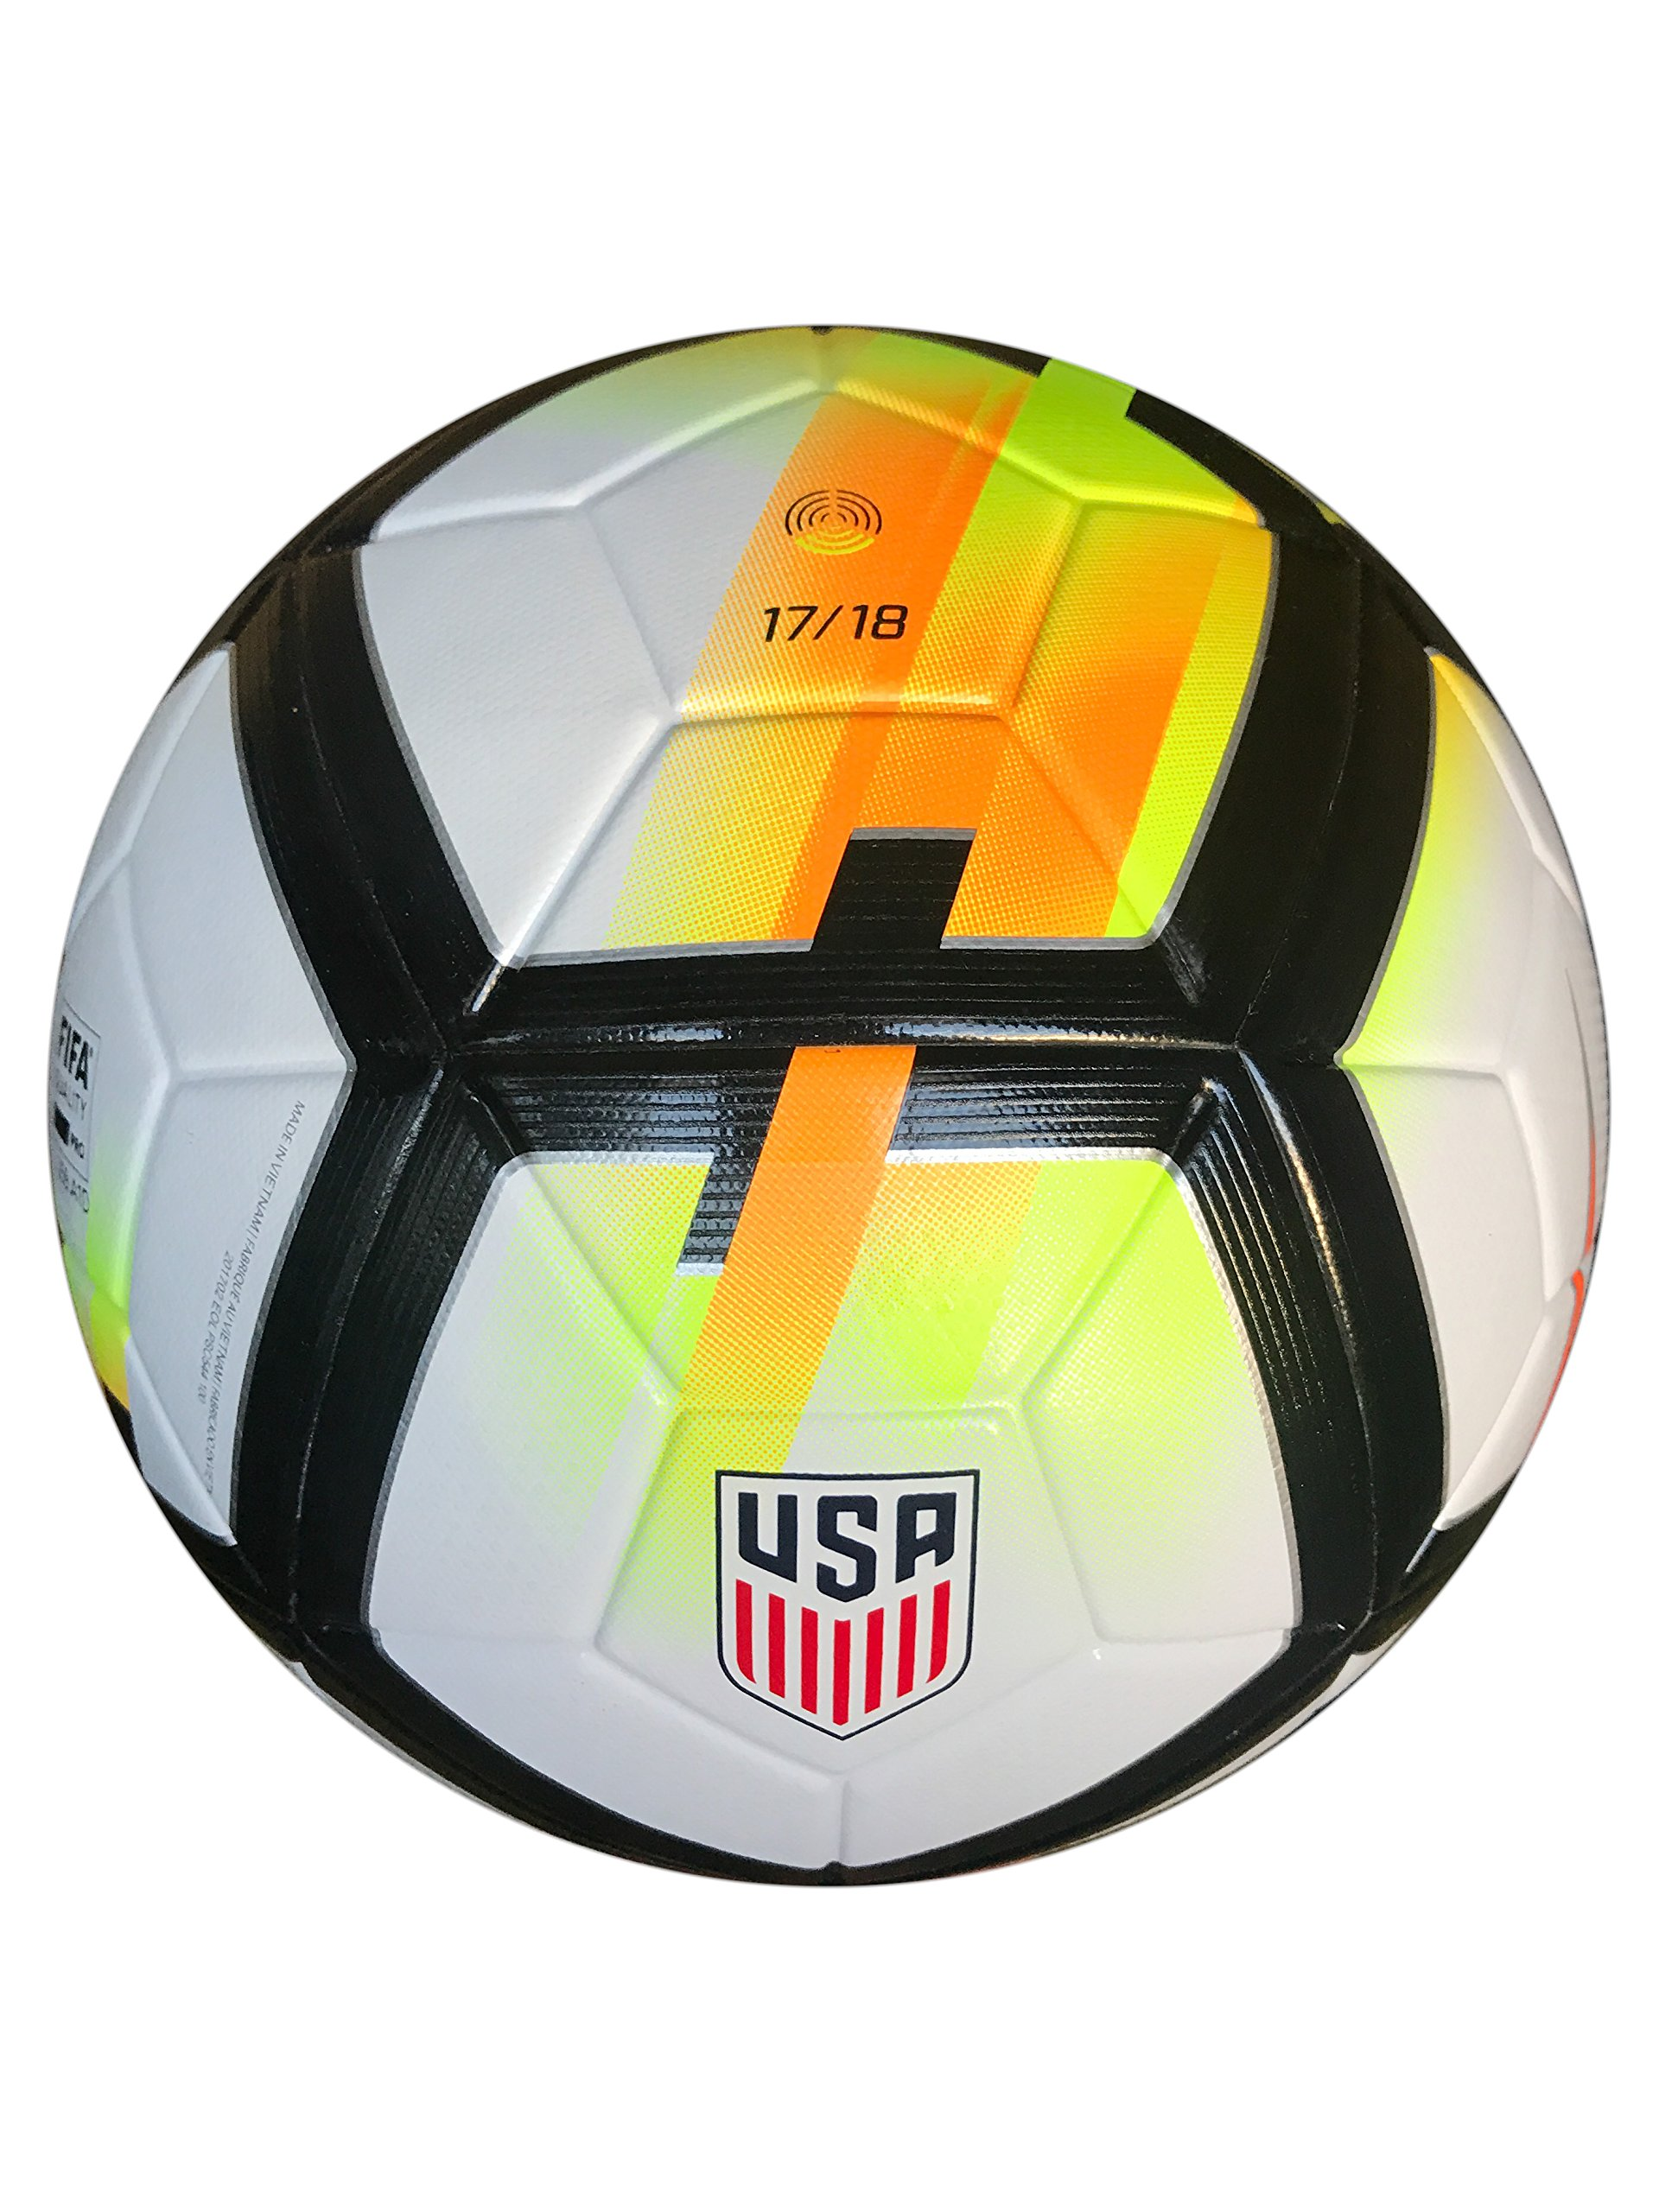 Nike Ordem V USA Soccer Team Official Match Ball (5)